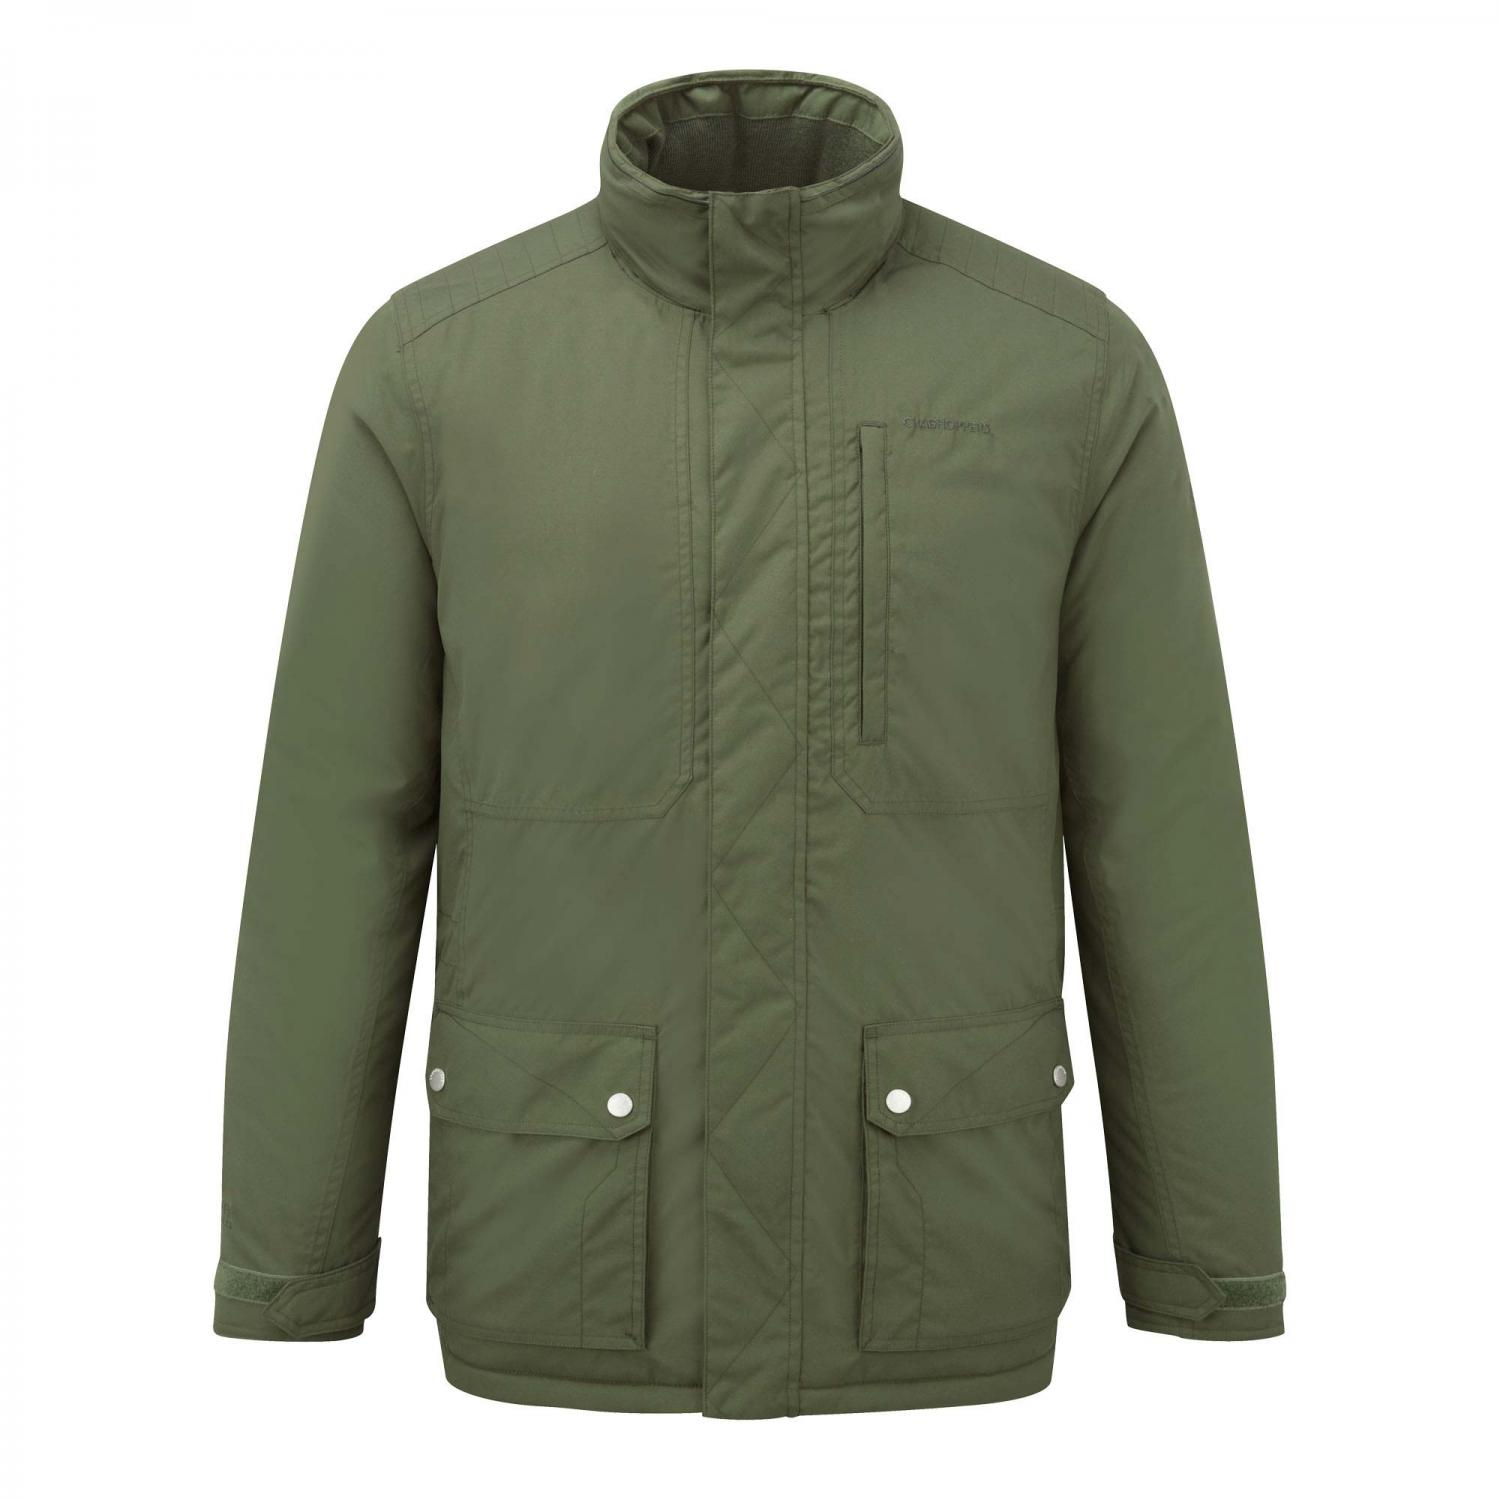 Eldon Plus Jacket Parka Green